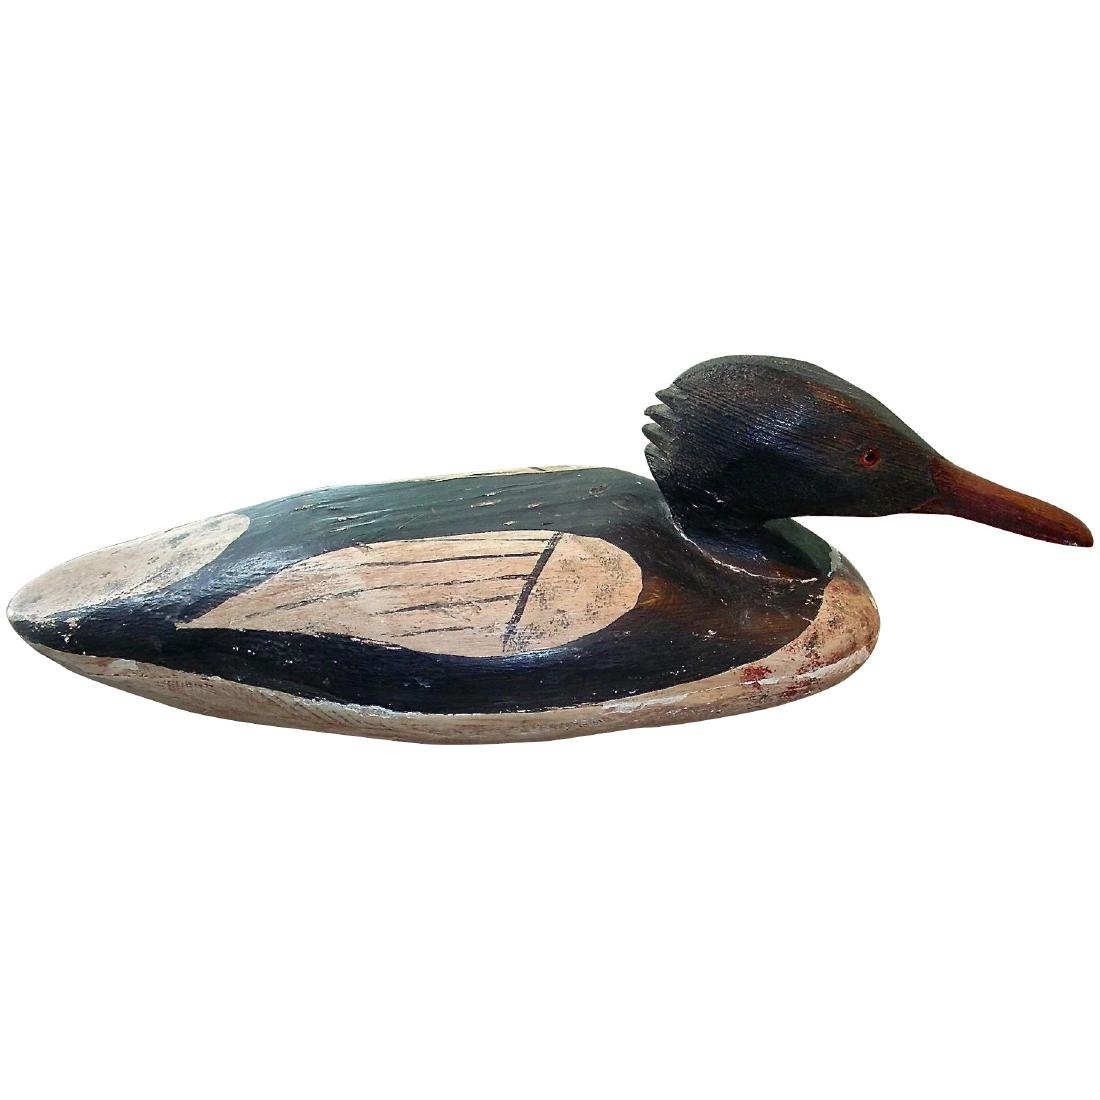 Hollow Carved Merganser Decoy